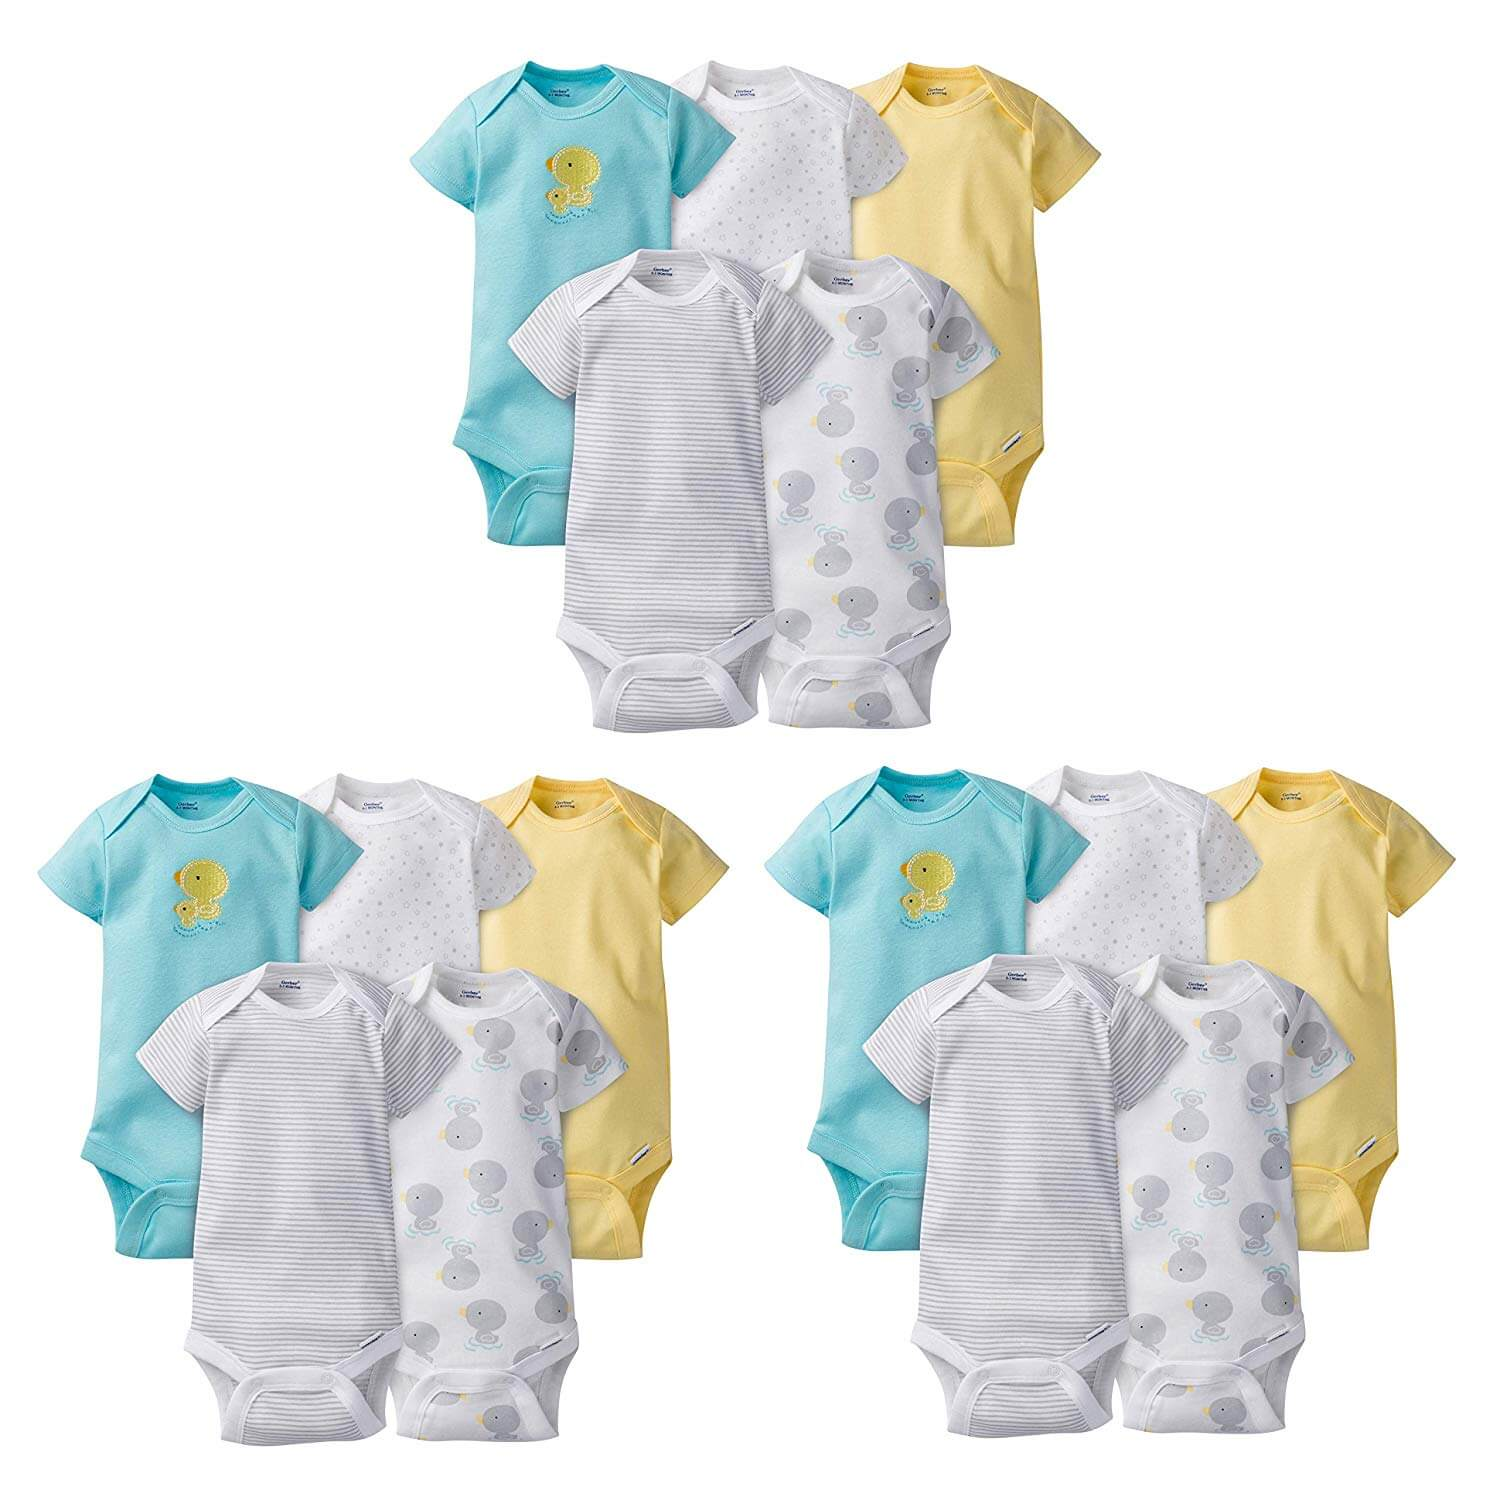 15-Piece Neutral Duck Onesies Brand Short Sleeve Bodysuits Grow-with-Me Set-Gerber Childrenswear